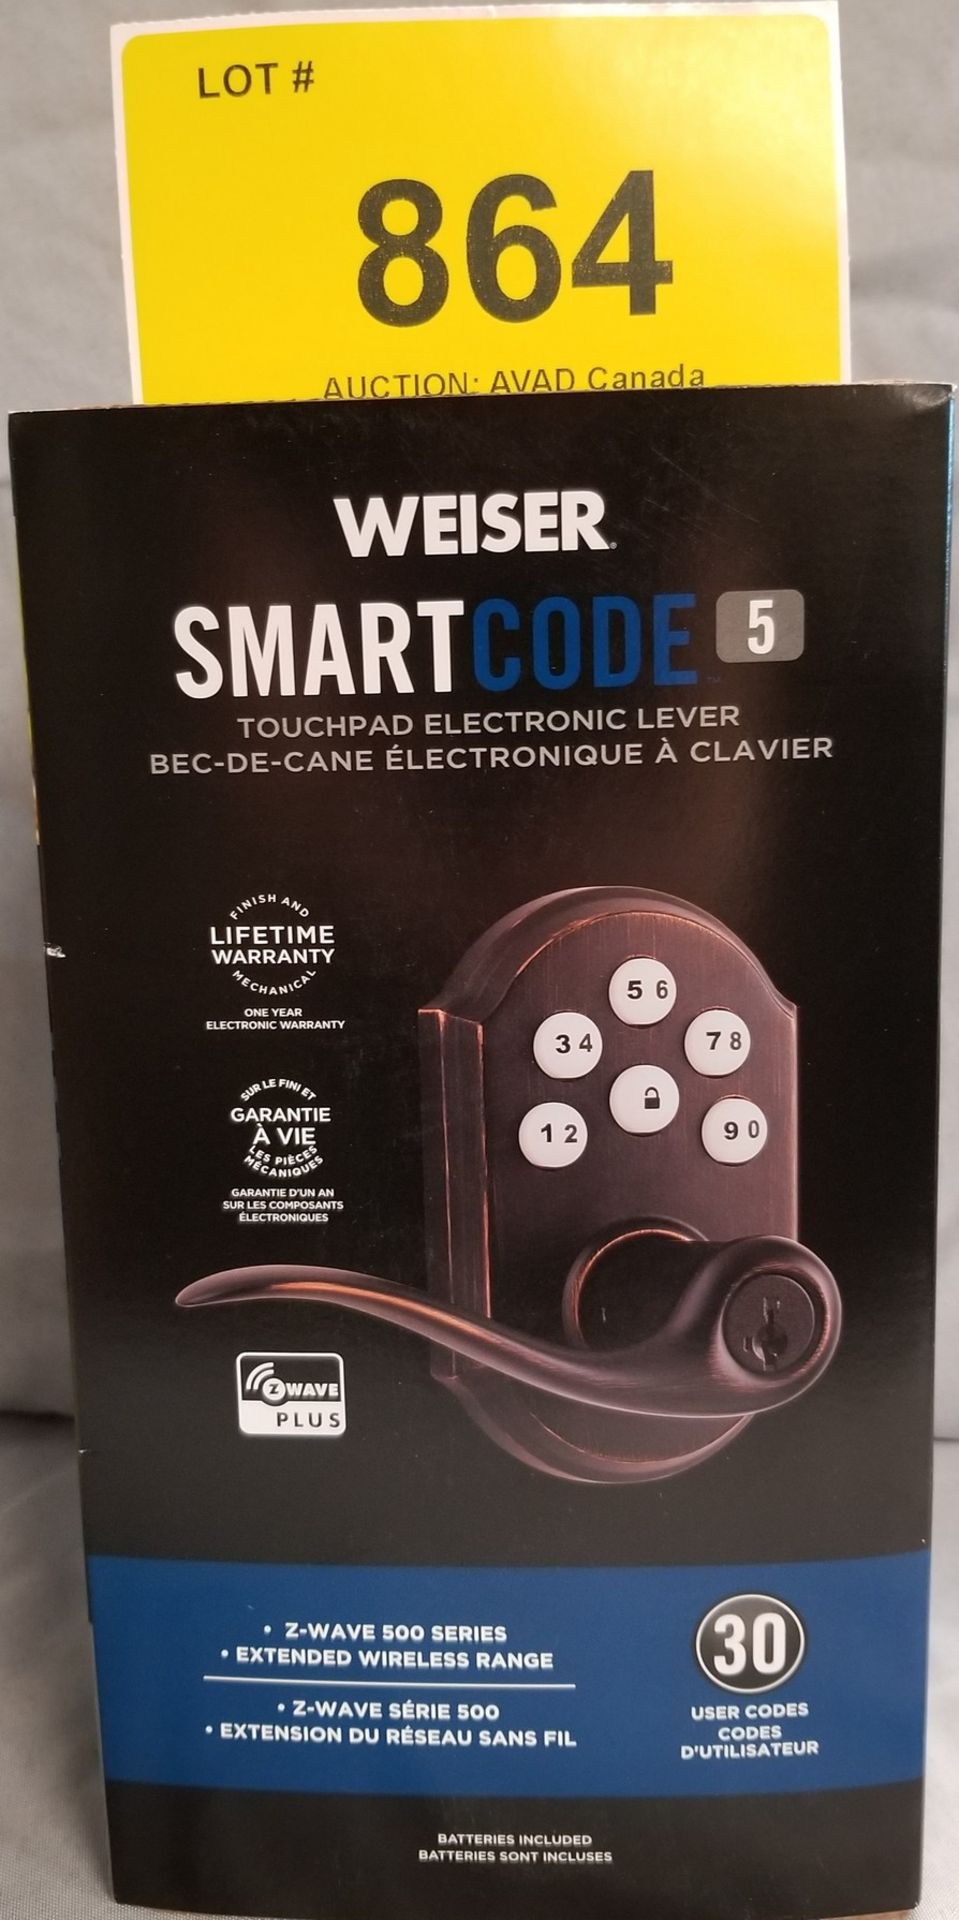 WEISER SMART CODE 5 TOUCHPAD ELECTRONIC LEVER - (BNIB) MSRP $229